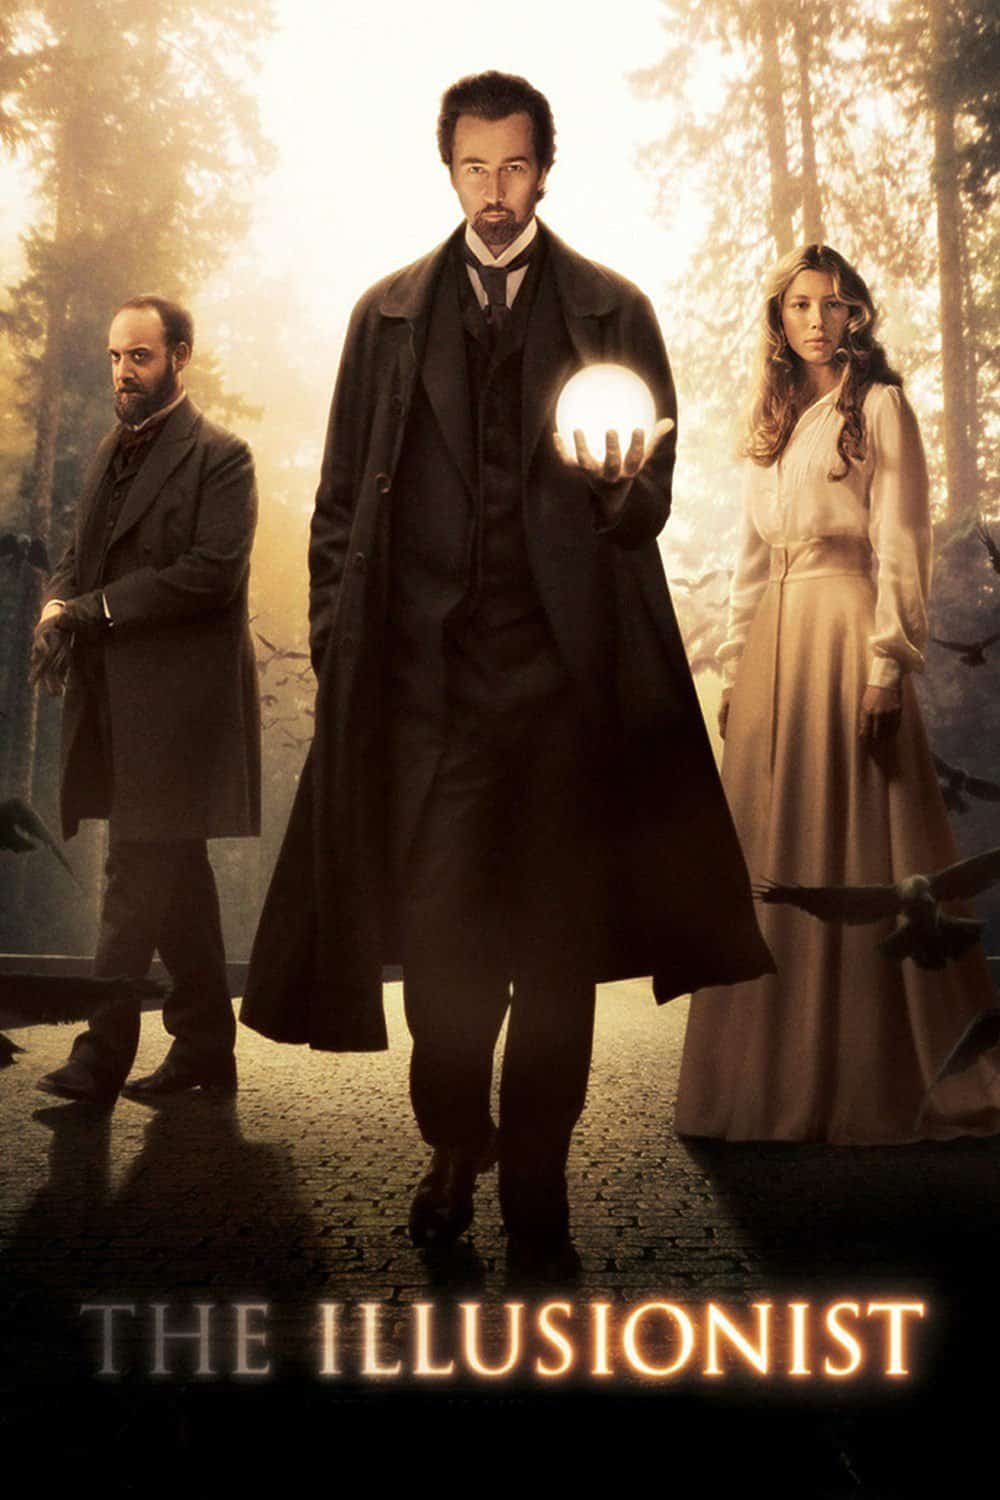 The Illusionist, 2006